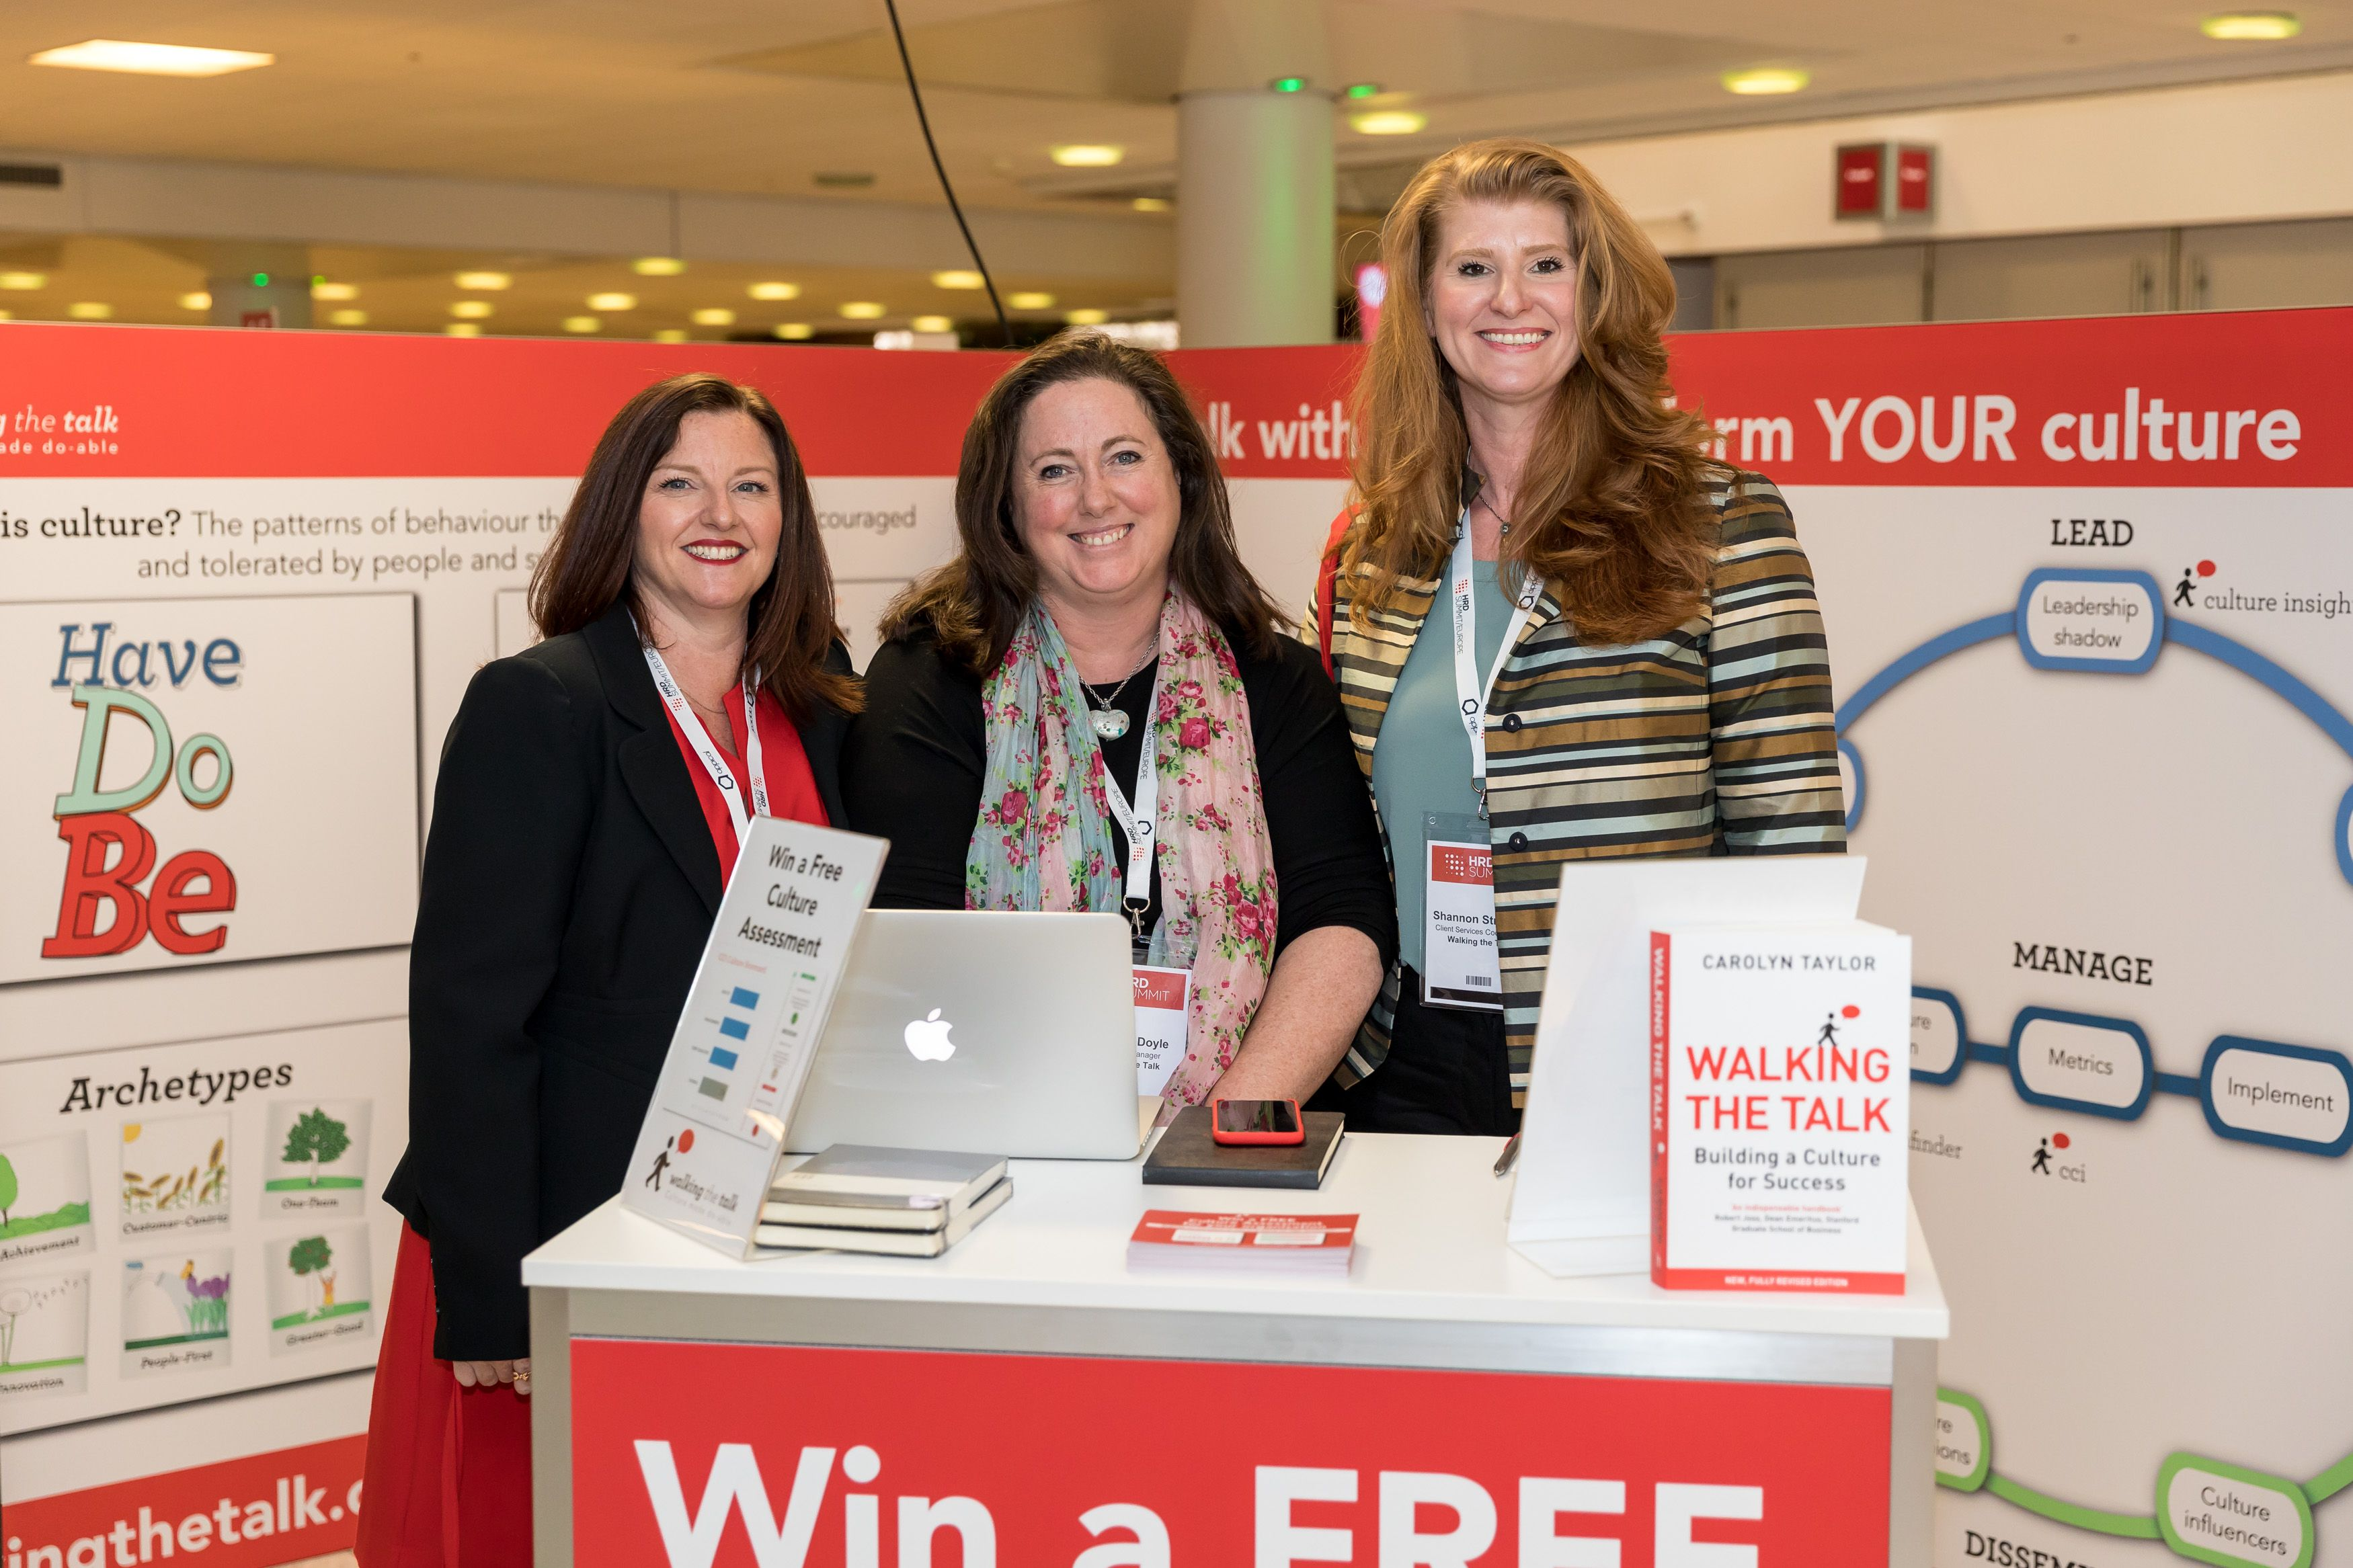 Finance Project Manager Sarah Sheehan, Sales & Business Development Manager Deborah Doyle and Client Services Coordinator Shannon Strasser hosting our stand.